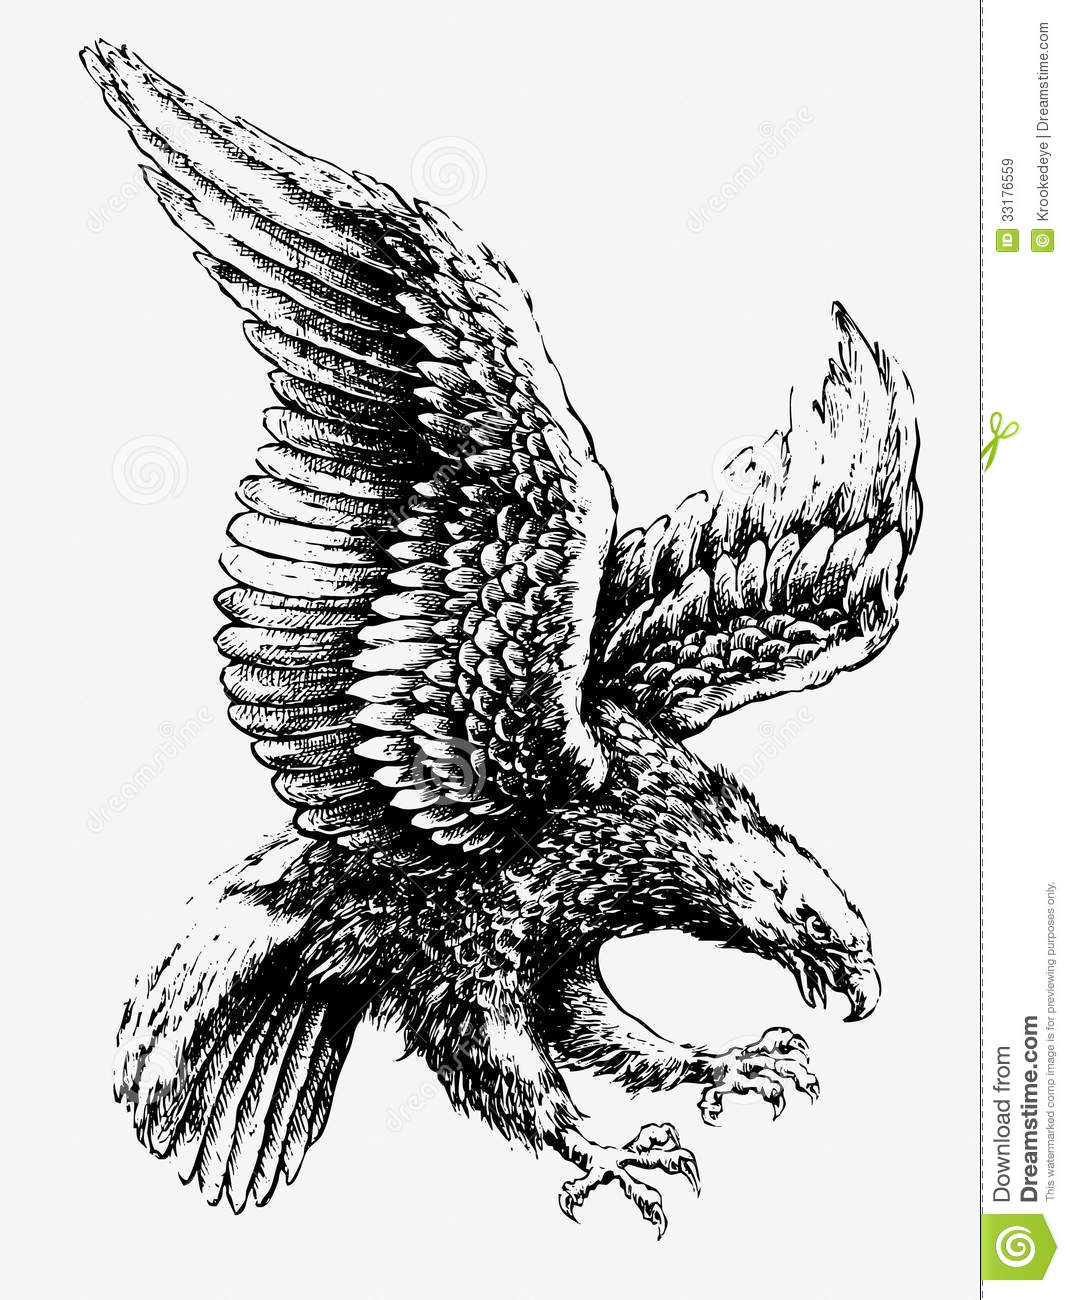 swooping eagle stock vector illustration of swooping 33176559. Black Bedroom Furniture Sets. Home Design Ideas